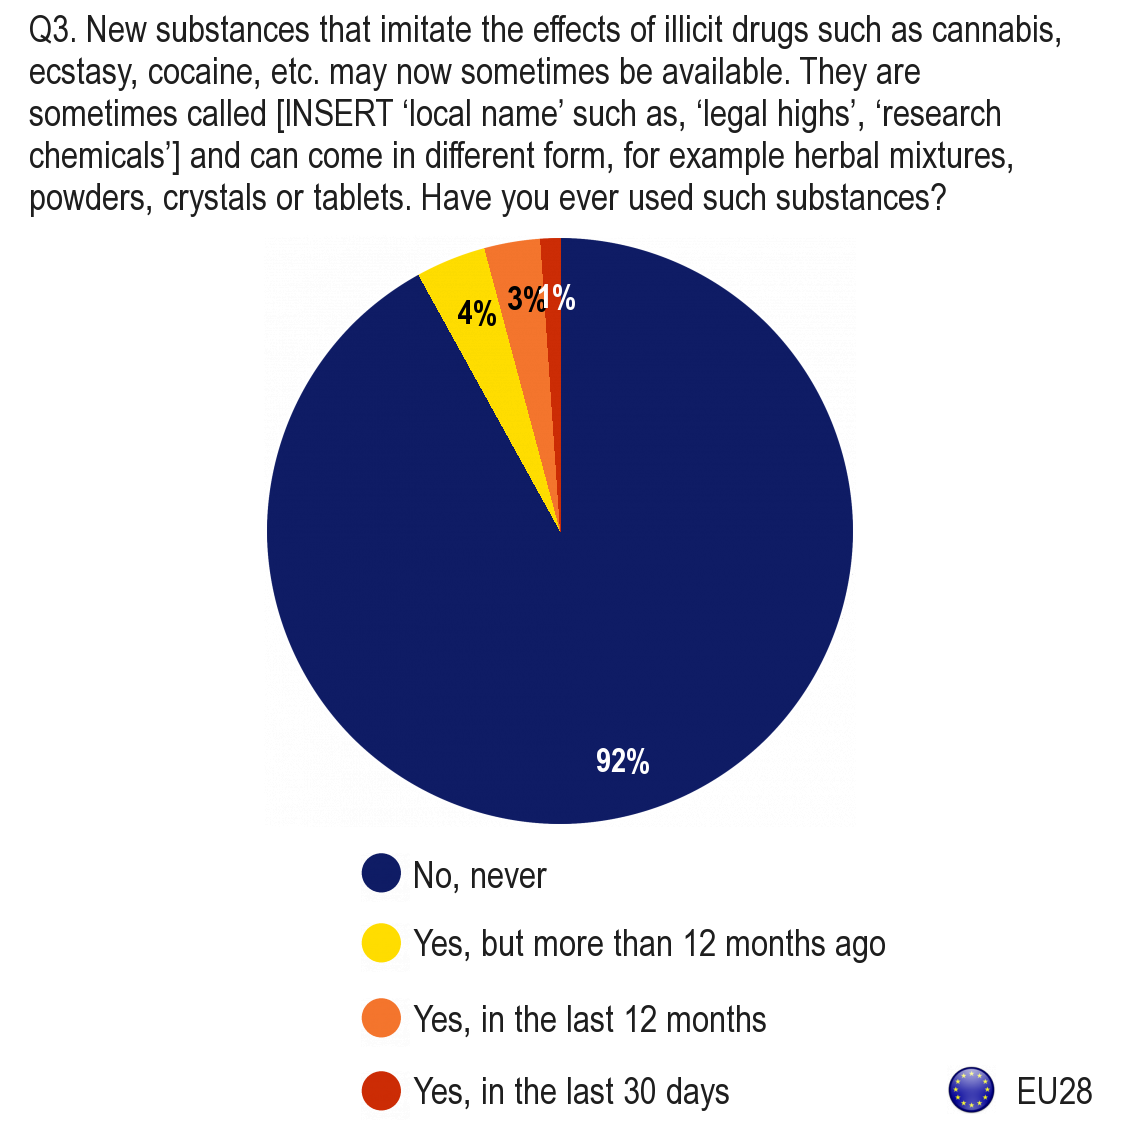 FLASH EUROBAROMETER I. ACCESS TO AND USE OF ILLICIT DRUGS AND SUBSTANCES THAT IMITATE THE EFFECTS OF ILLICIT DRUGS 1.